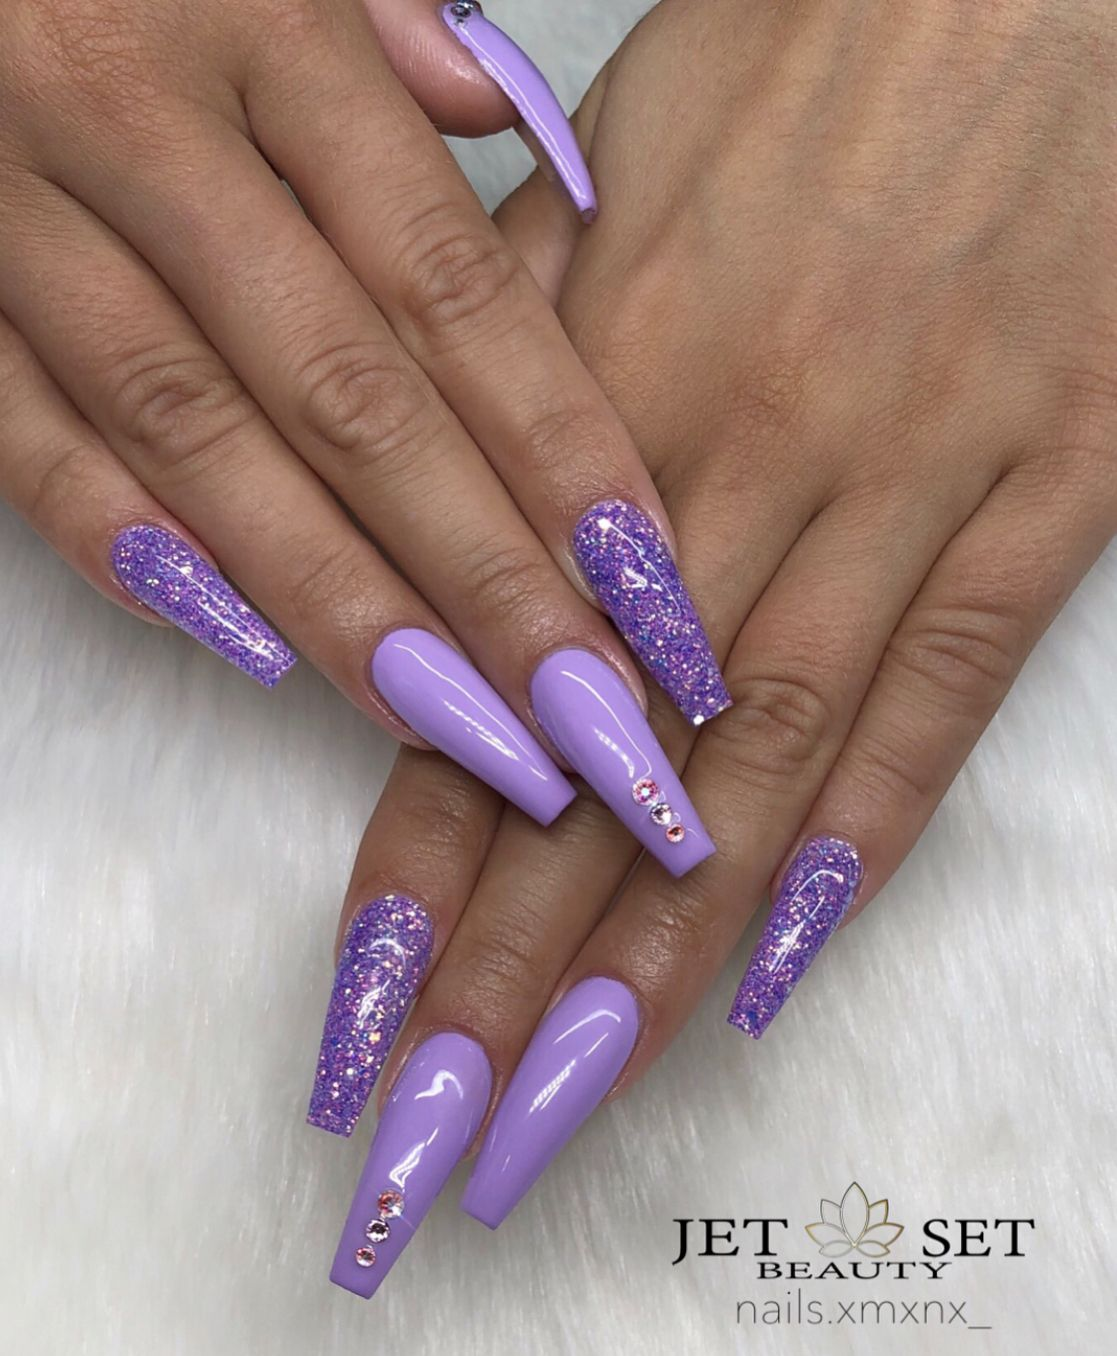 Pin by Luxuryxxx on NAILS // | Purple acrylic nails ...